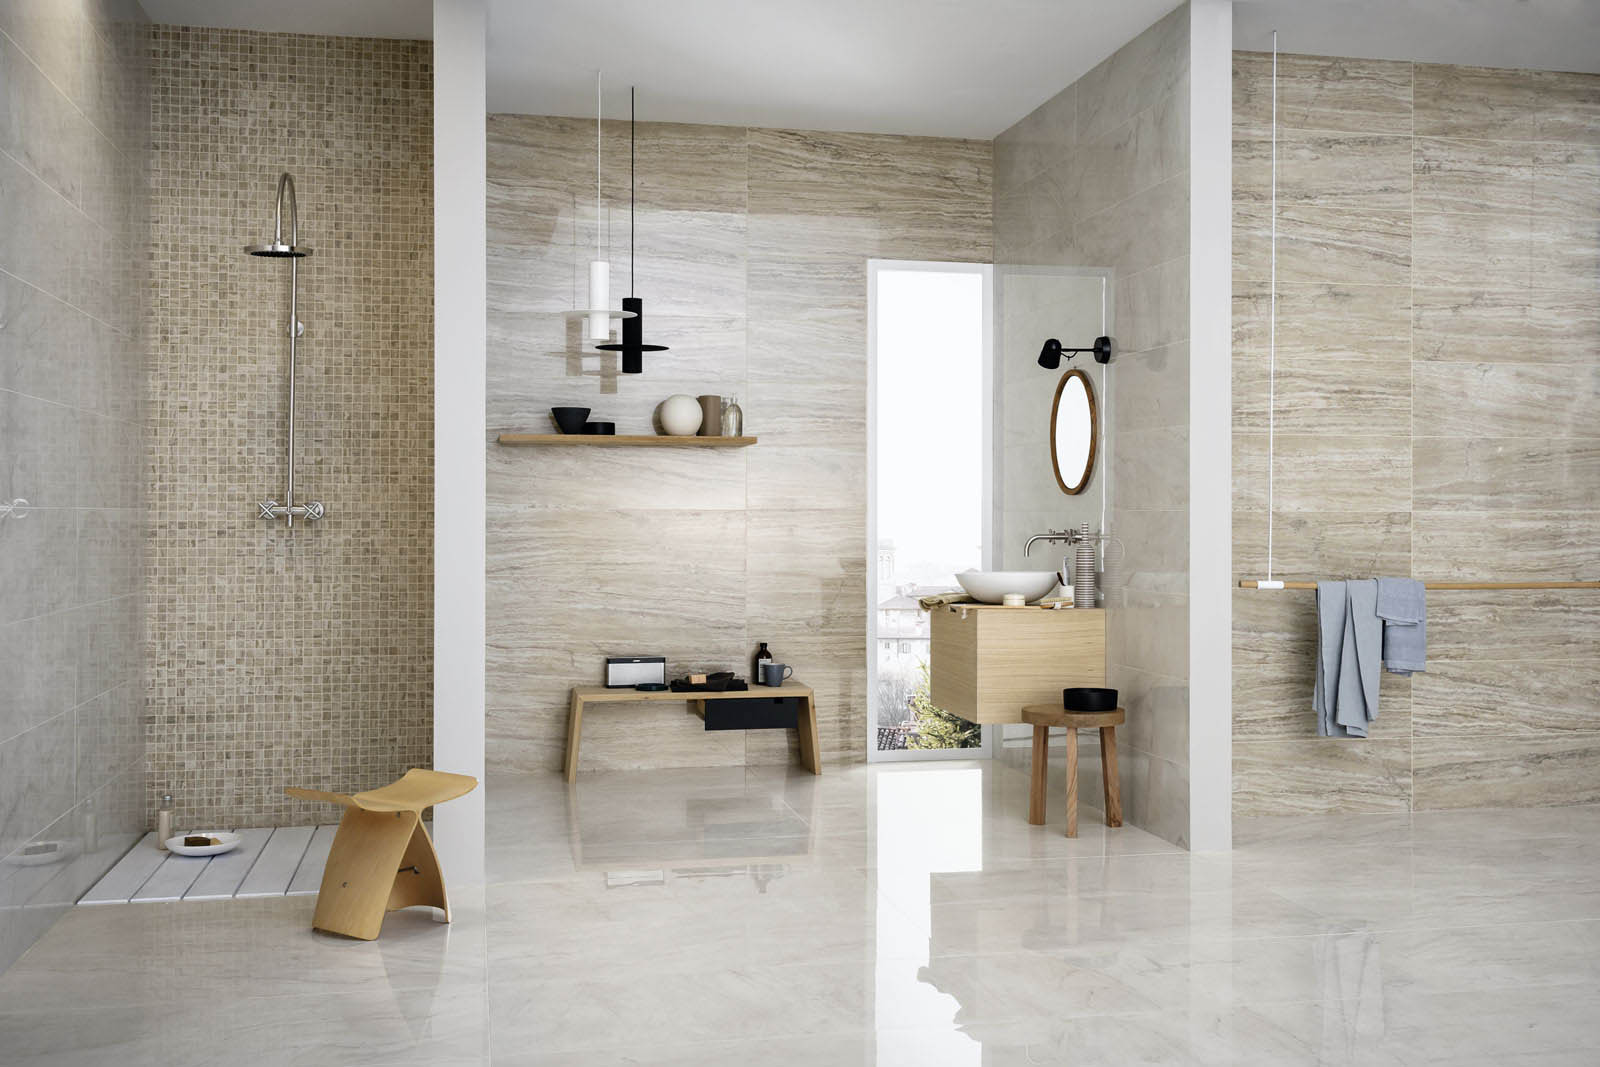 Baño Turco Domestico:Ceramic Tile Bathroom